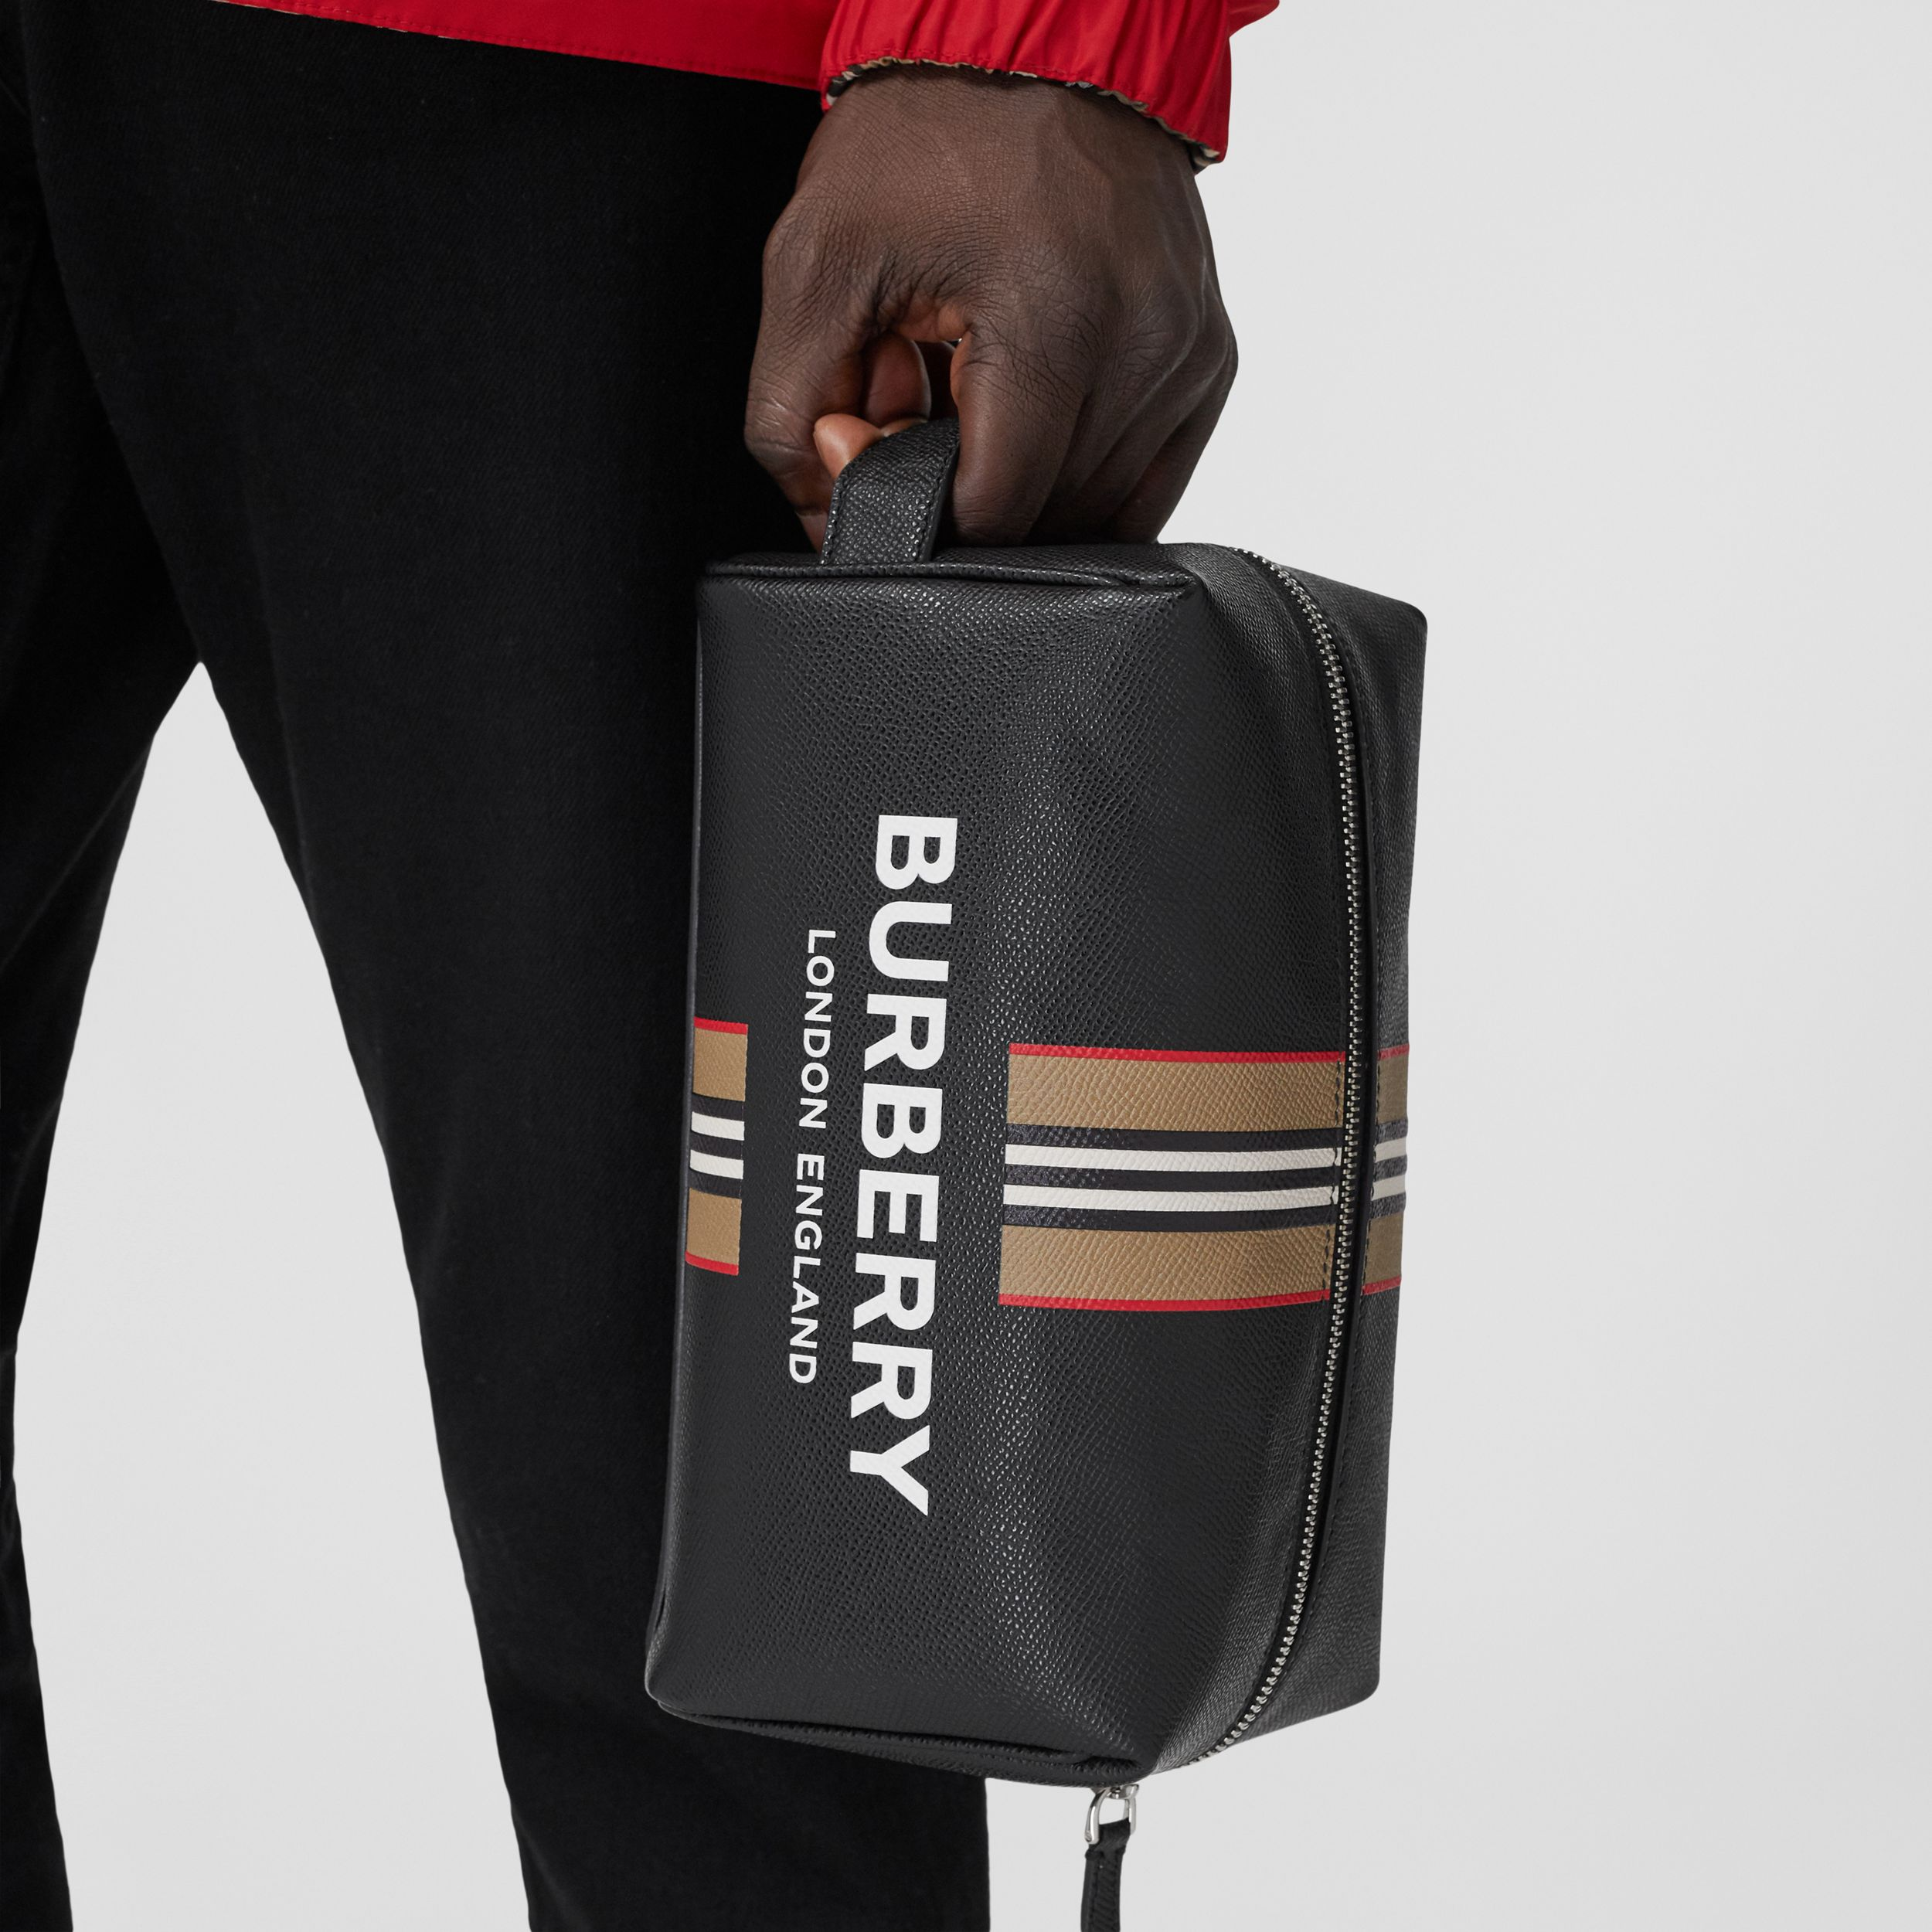 Logo and Icon Stripe Print Leather Travel Pouch in Black - Men | Burberry - 3